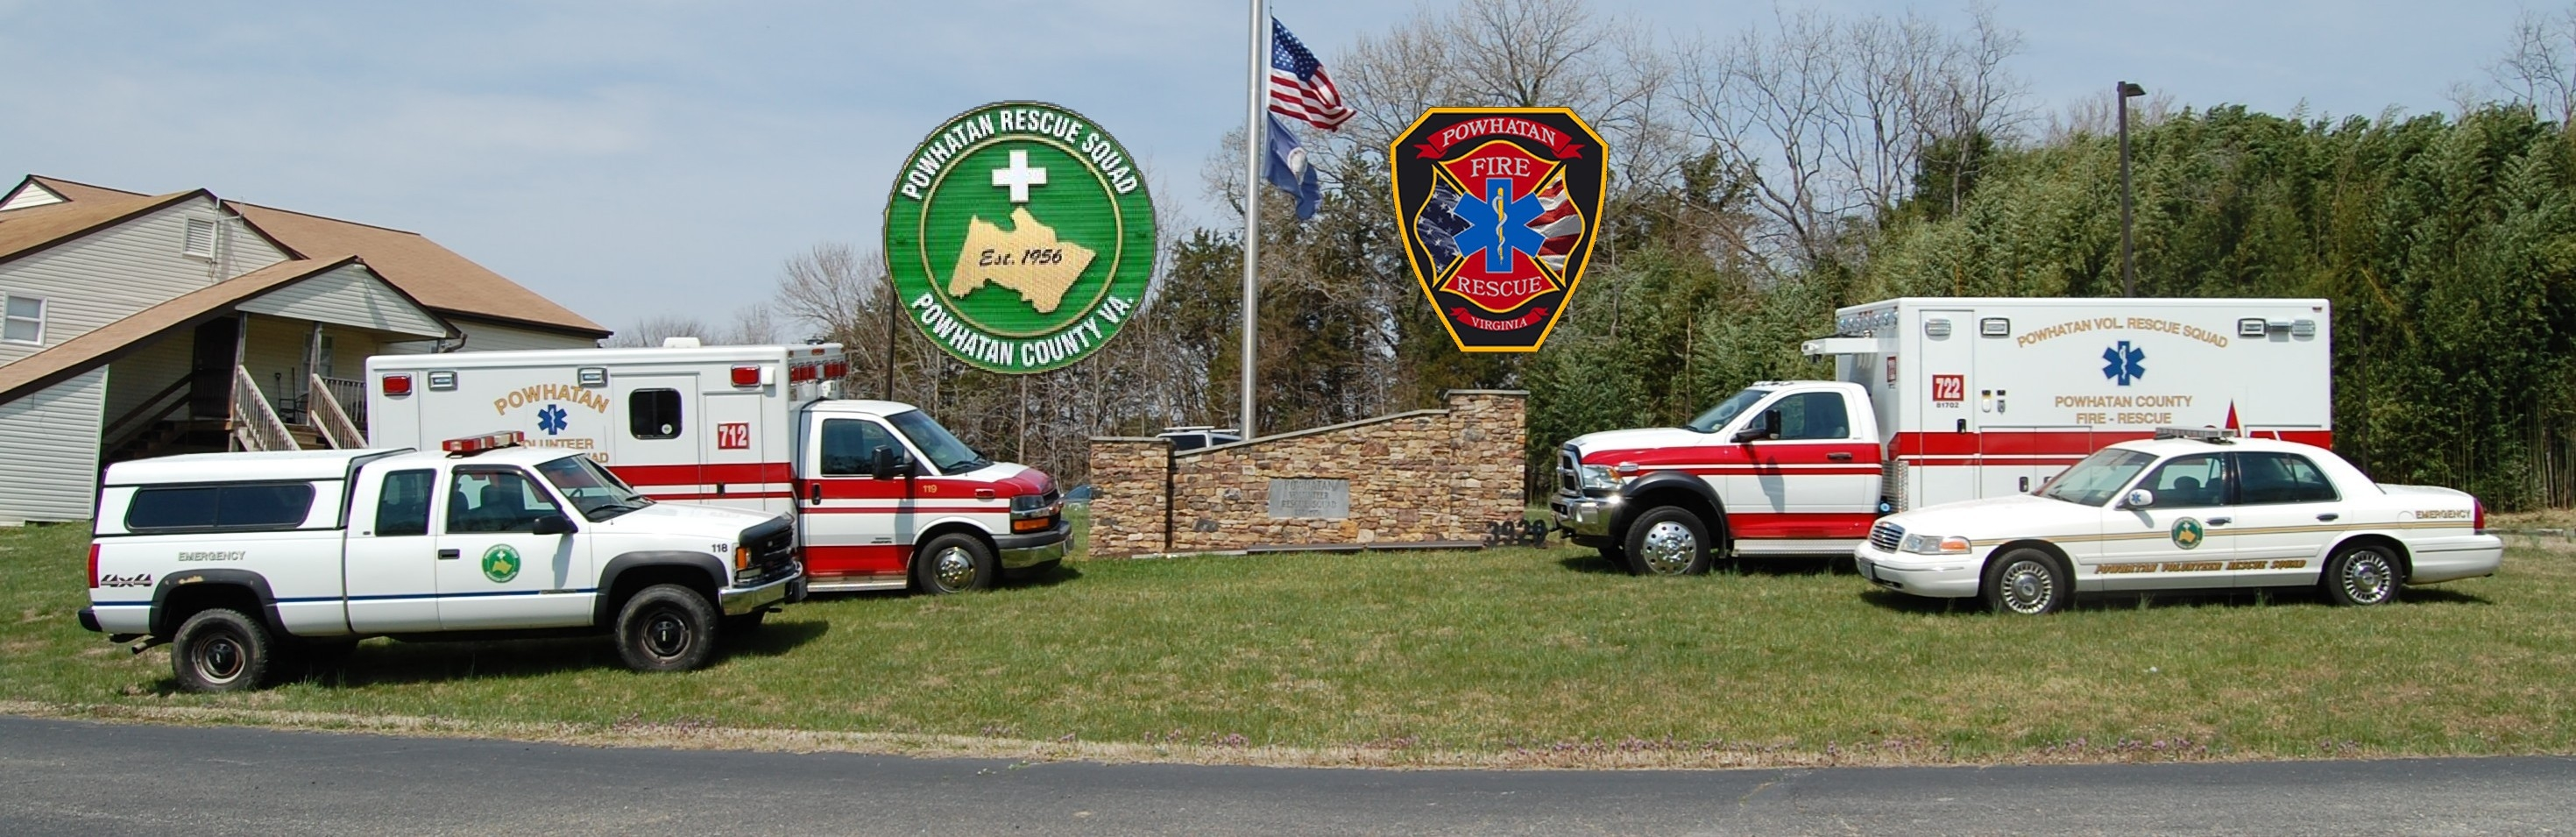 Powhatan Volunteer Rescue Squad Inc.